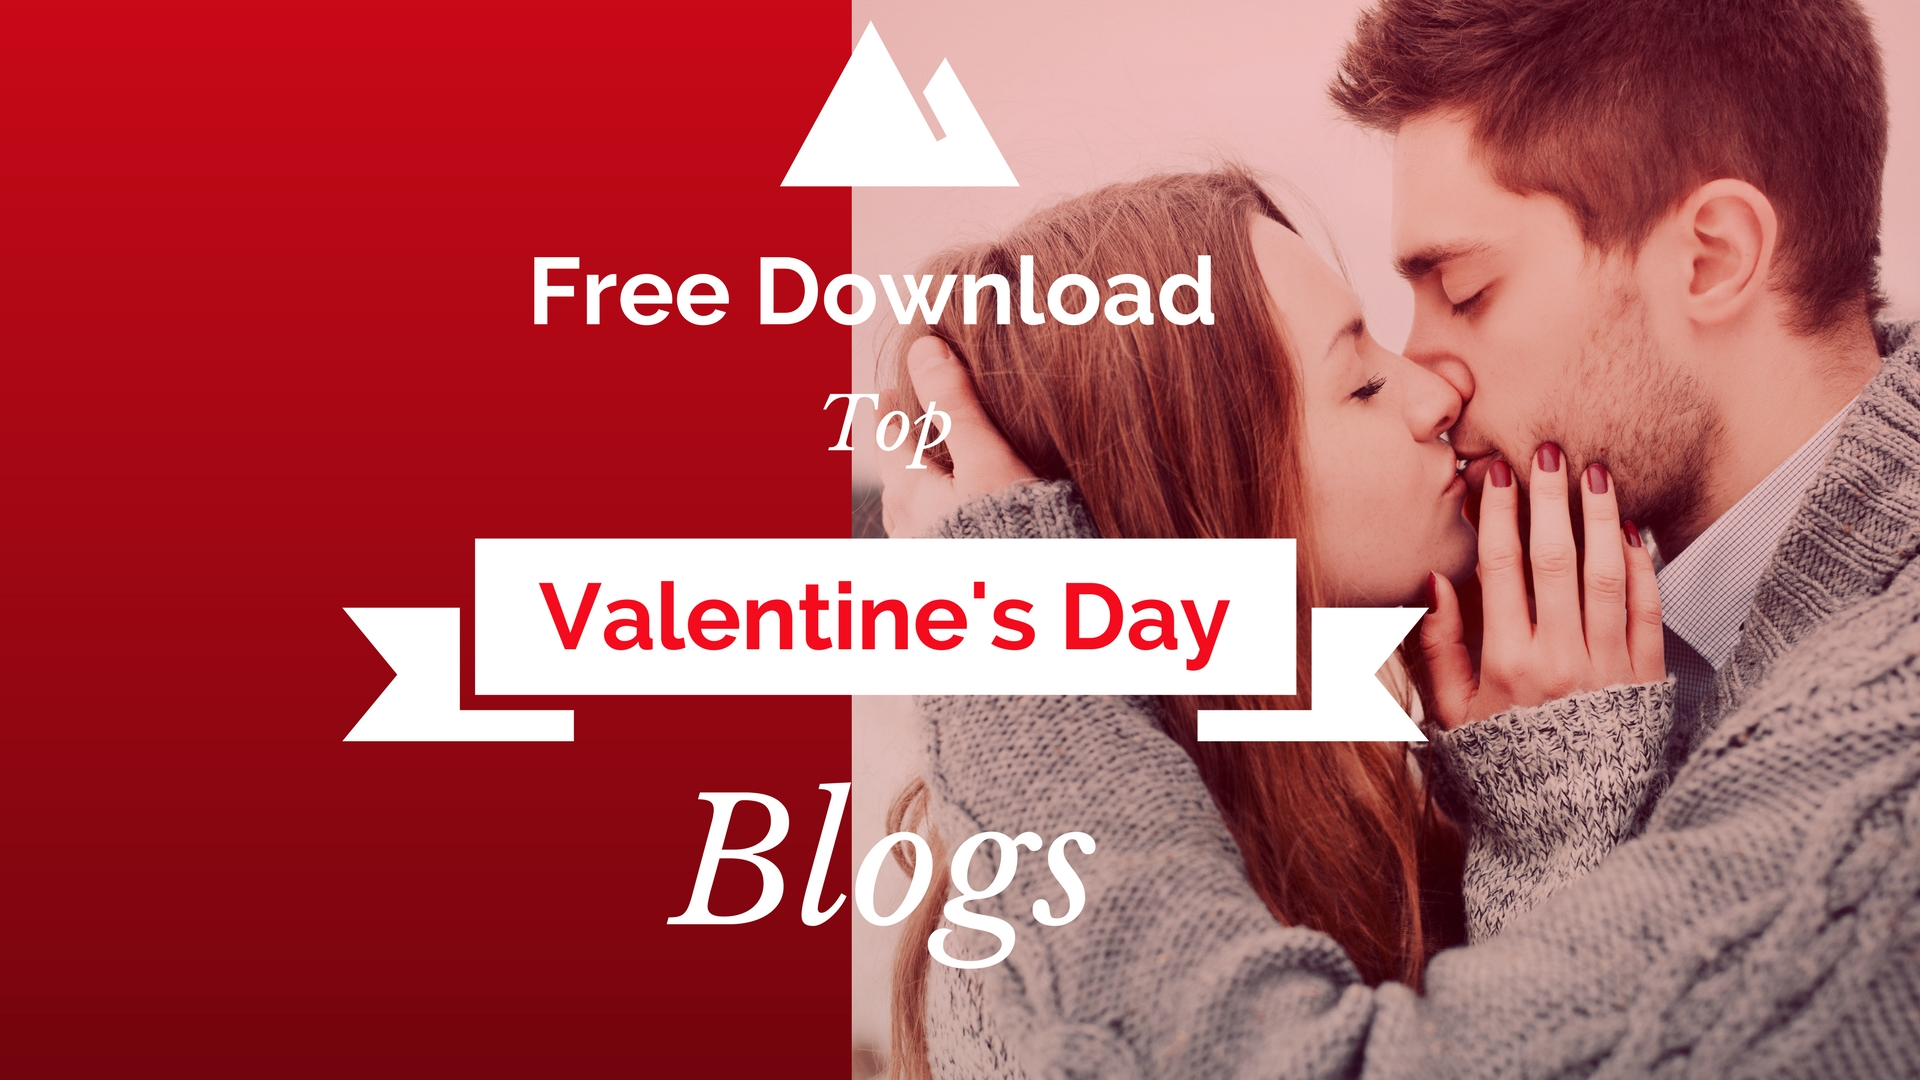 (Free Download!) List of Valentine's Day Influencers